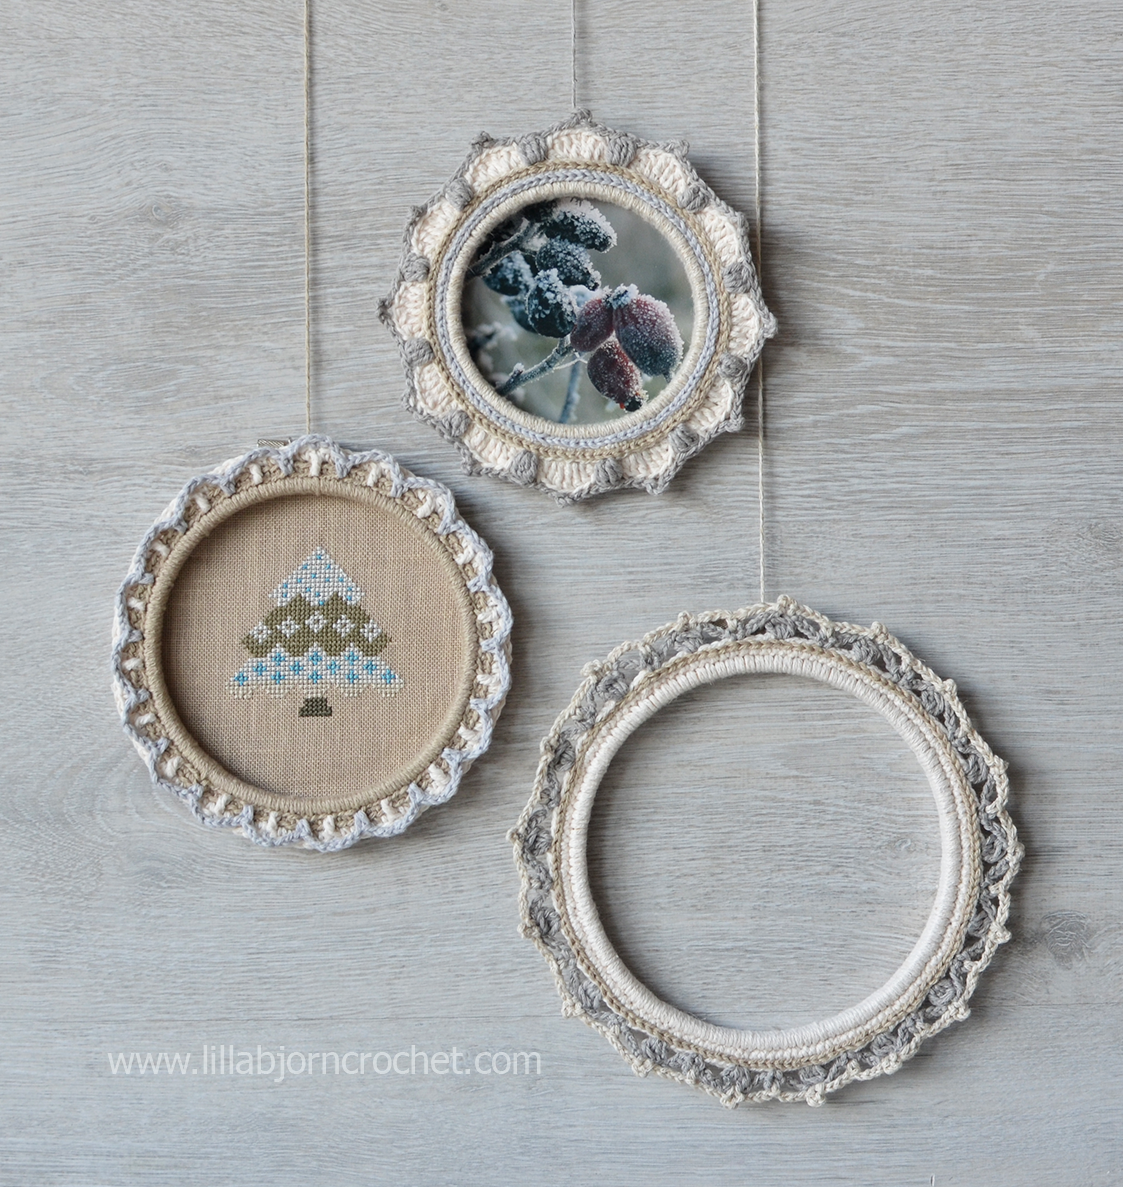 how to turn embroidery hoops into photo frames with crochet tutorial by lilla bjorn crochet - Embroidery Frames